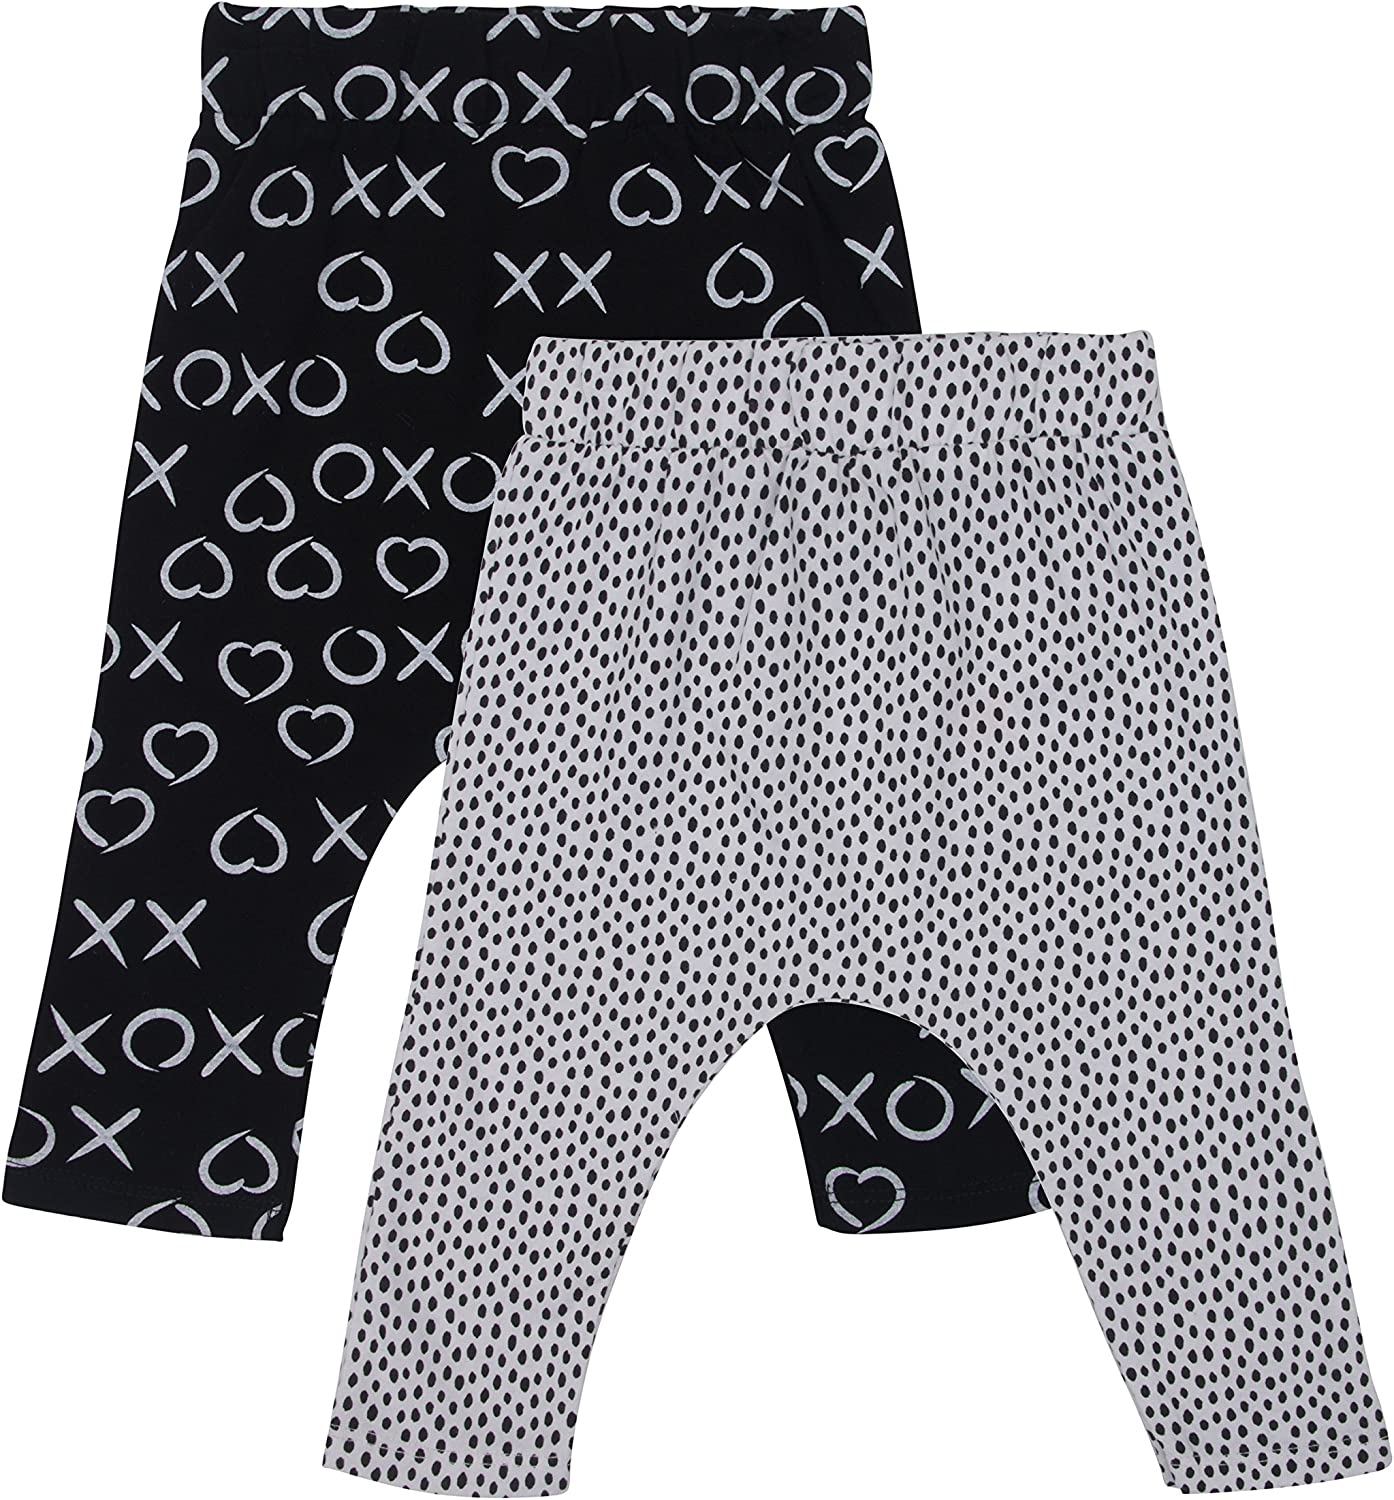 Comfy PL Kids 2-Pack Baby Harem Pants Cute and Resistant